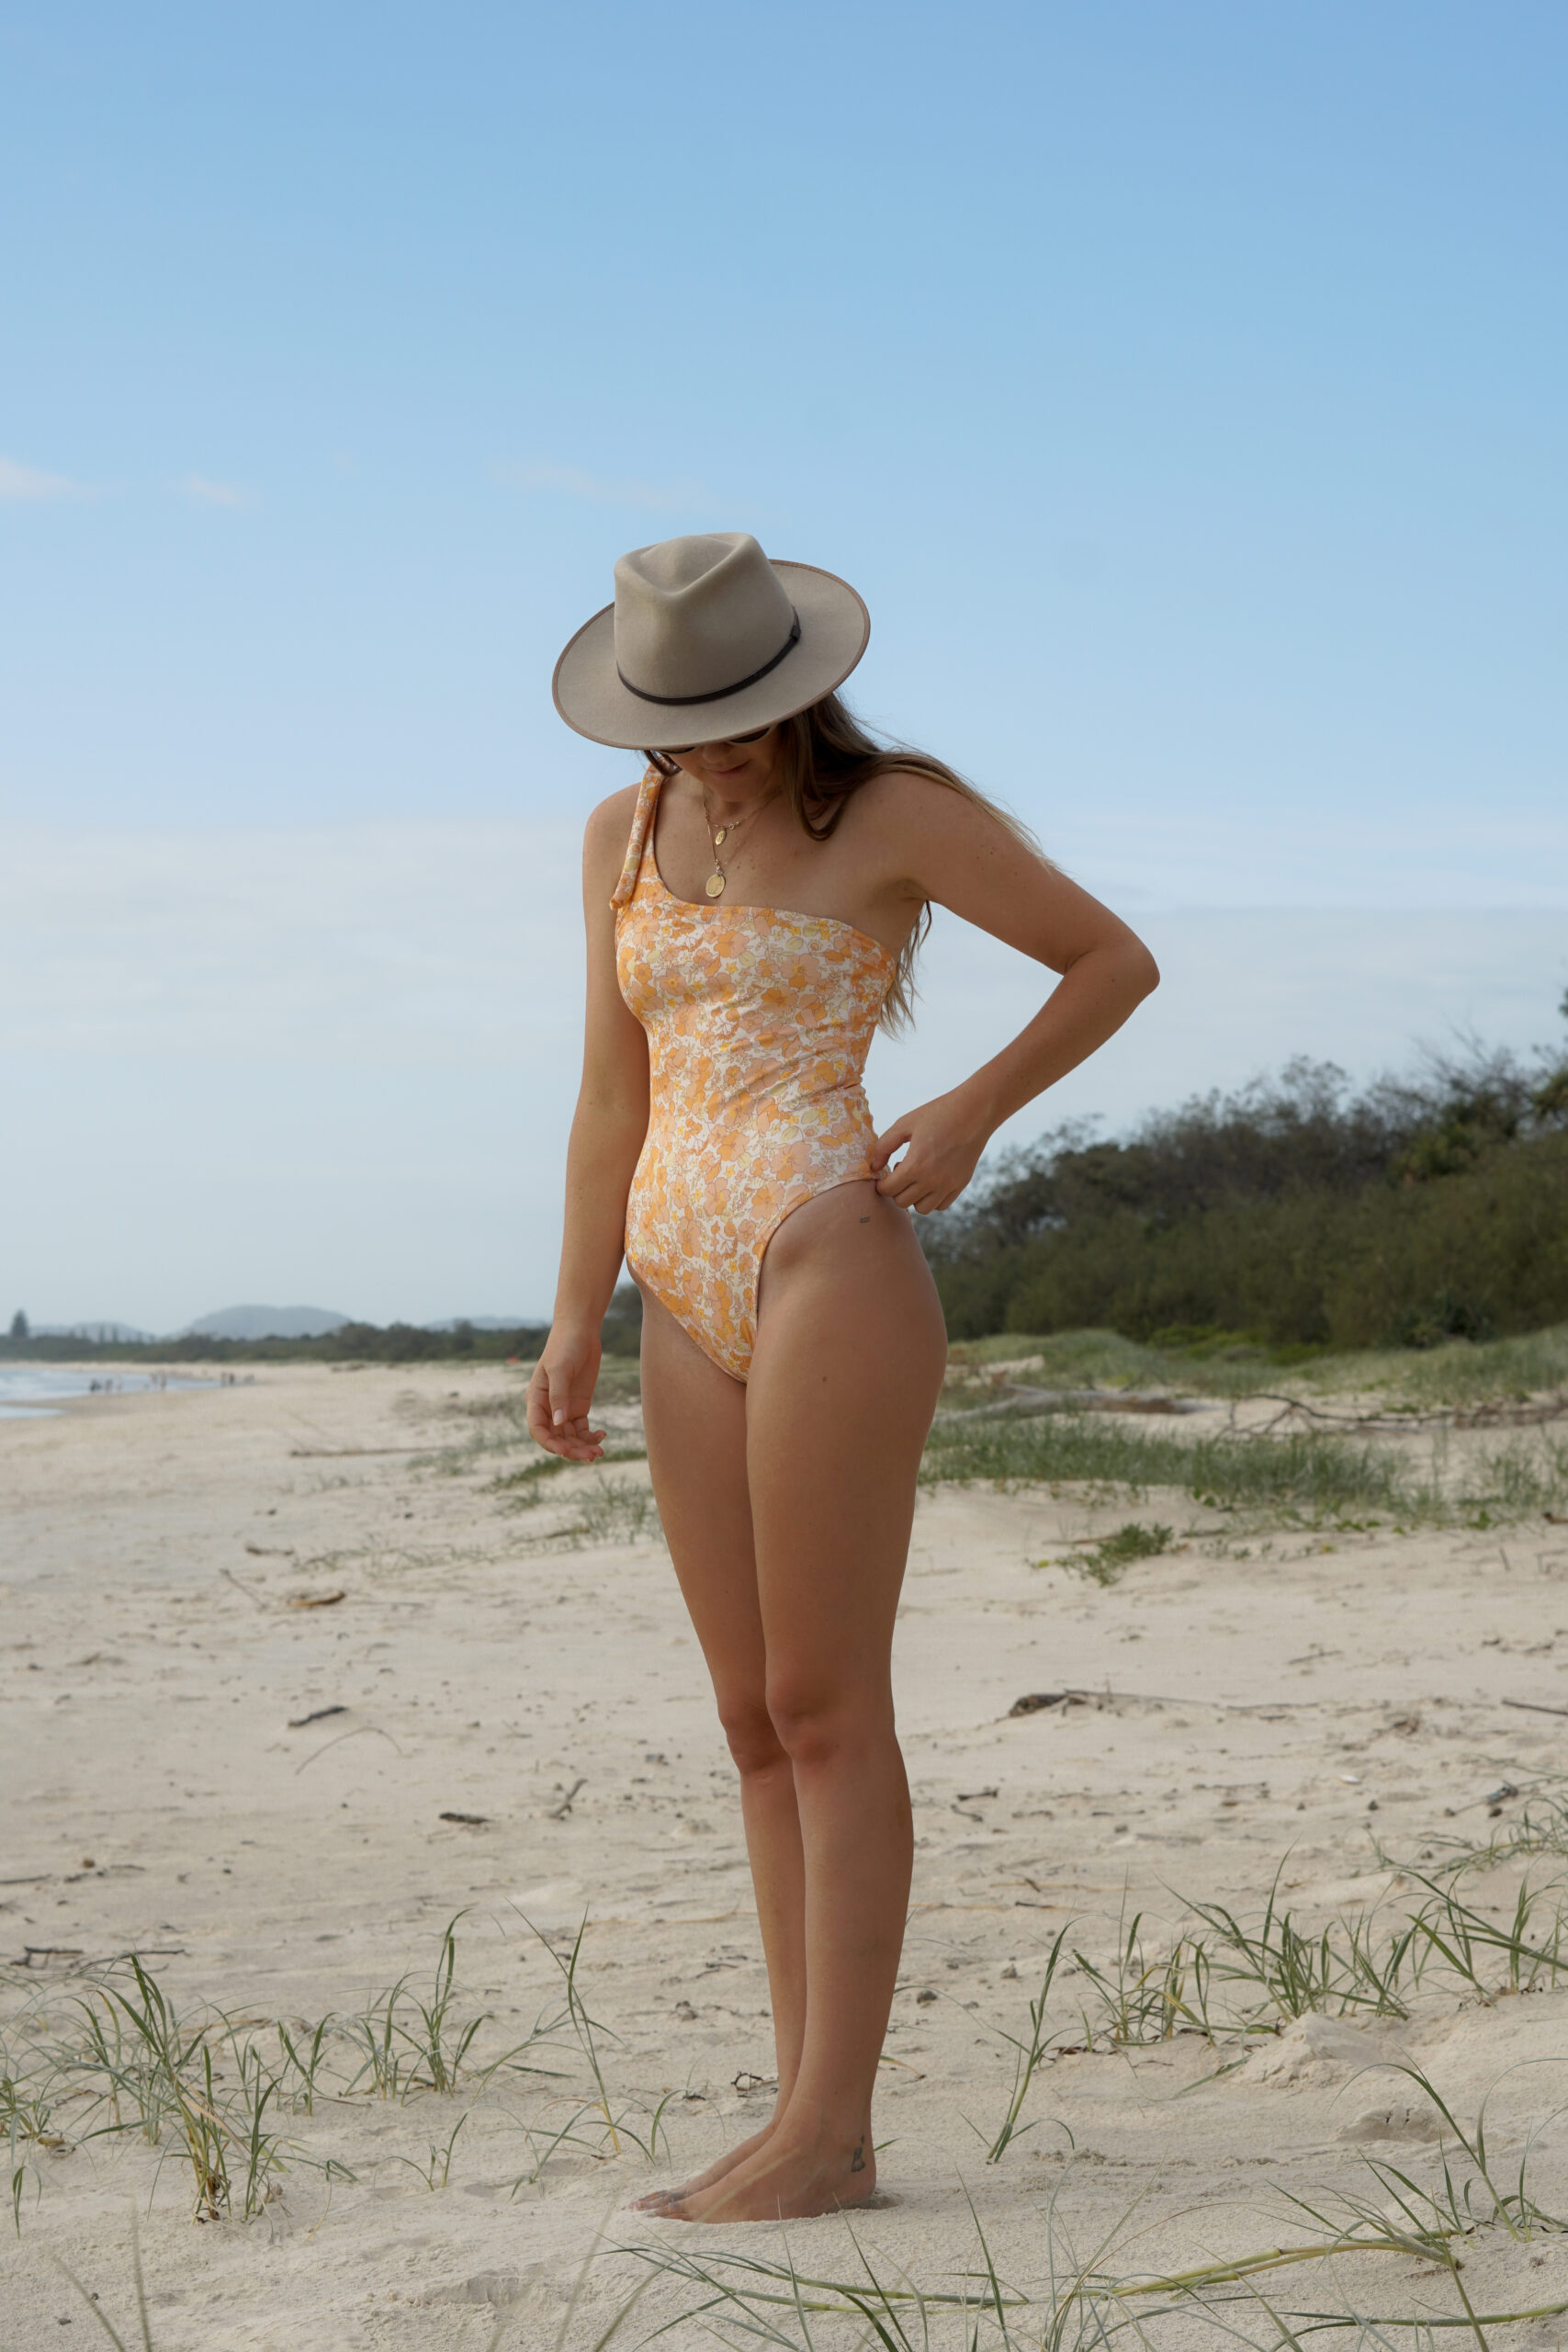 Maddy wearing a handmade bathing suit on the beach